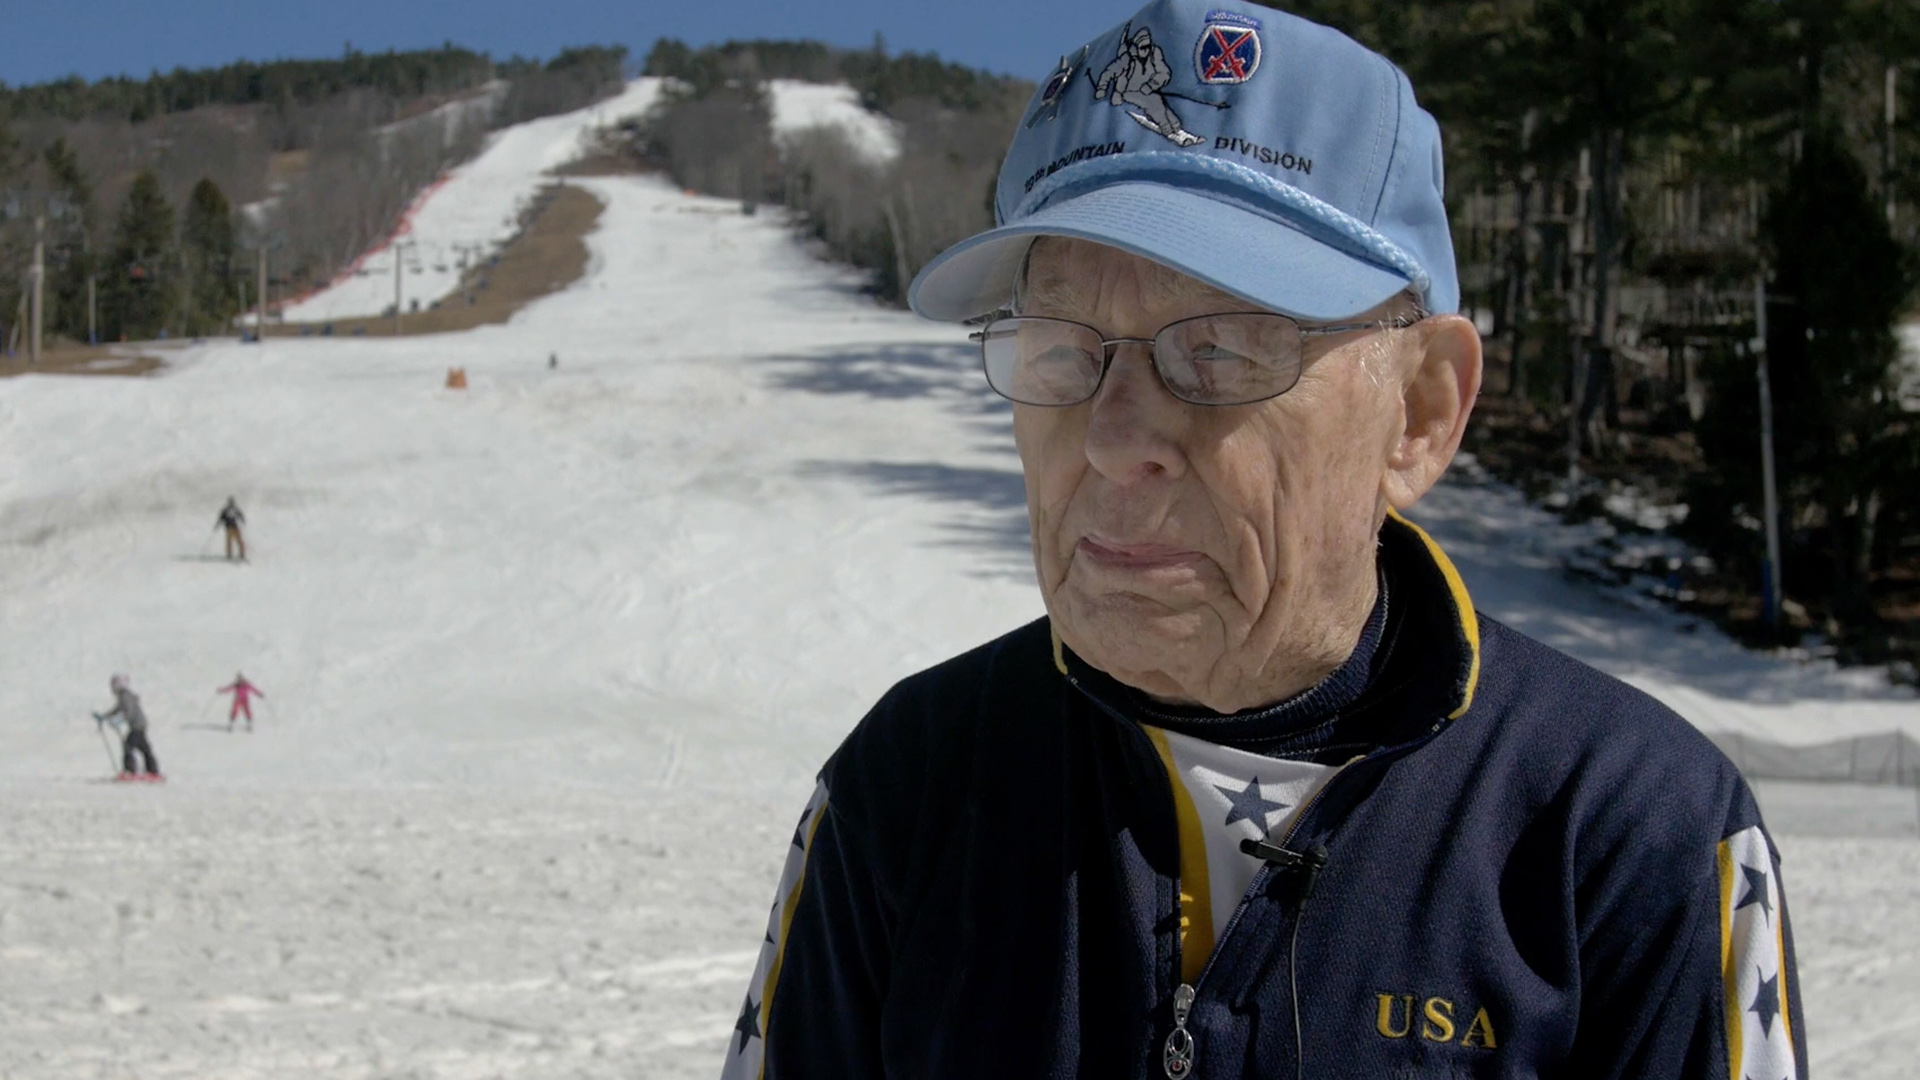 WATCH: 92-Year-Old WWII Veteran Still Competes in Ski Races: 'Skiing Is My First Love'